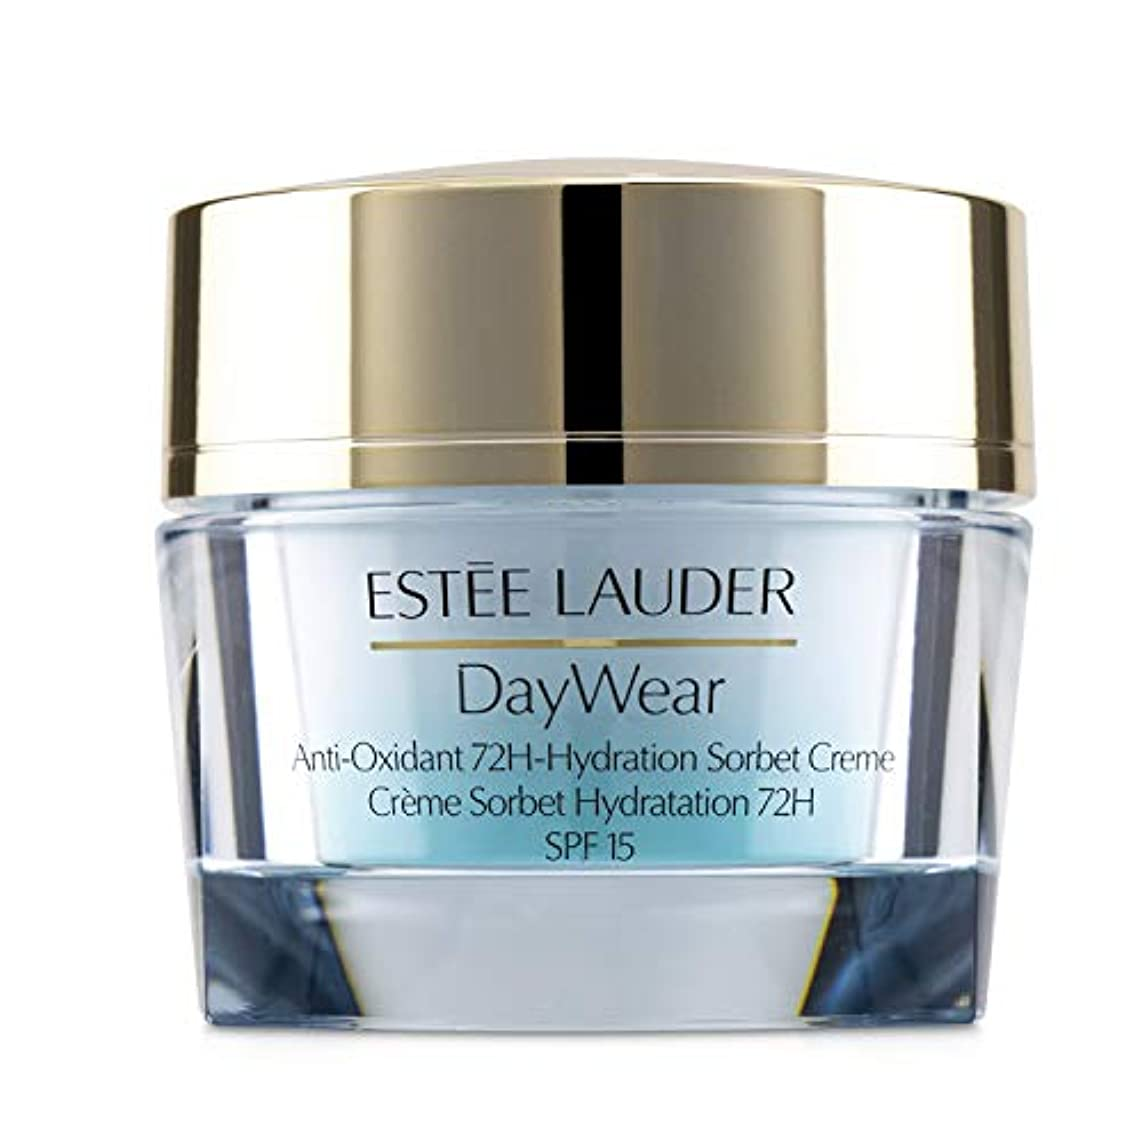 繊細不公平起きているエスティ ローダー DayWear Anti-Oxidant 72H-Hydration Sorbet Creme SPF 15 - Normal/Combination Skin 50ml/1.7oz並行輸入品